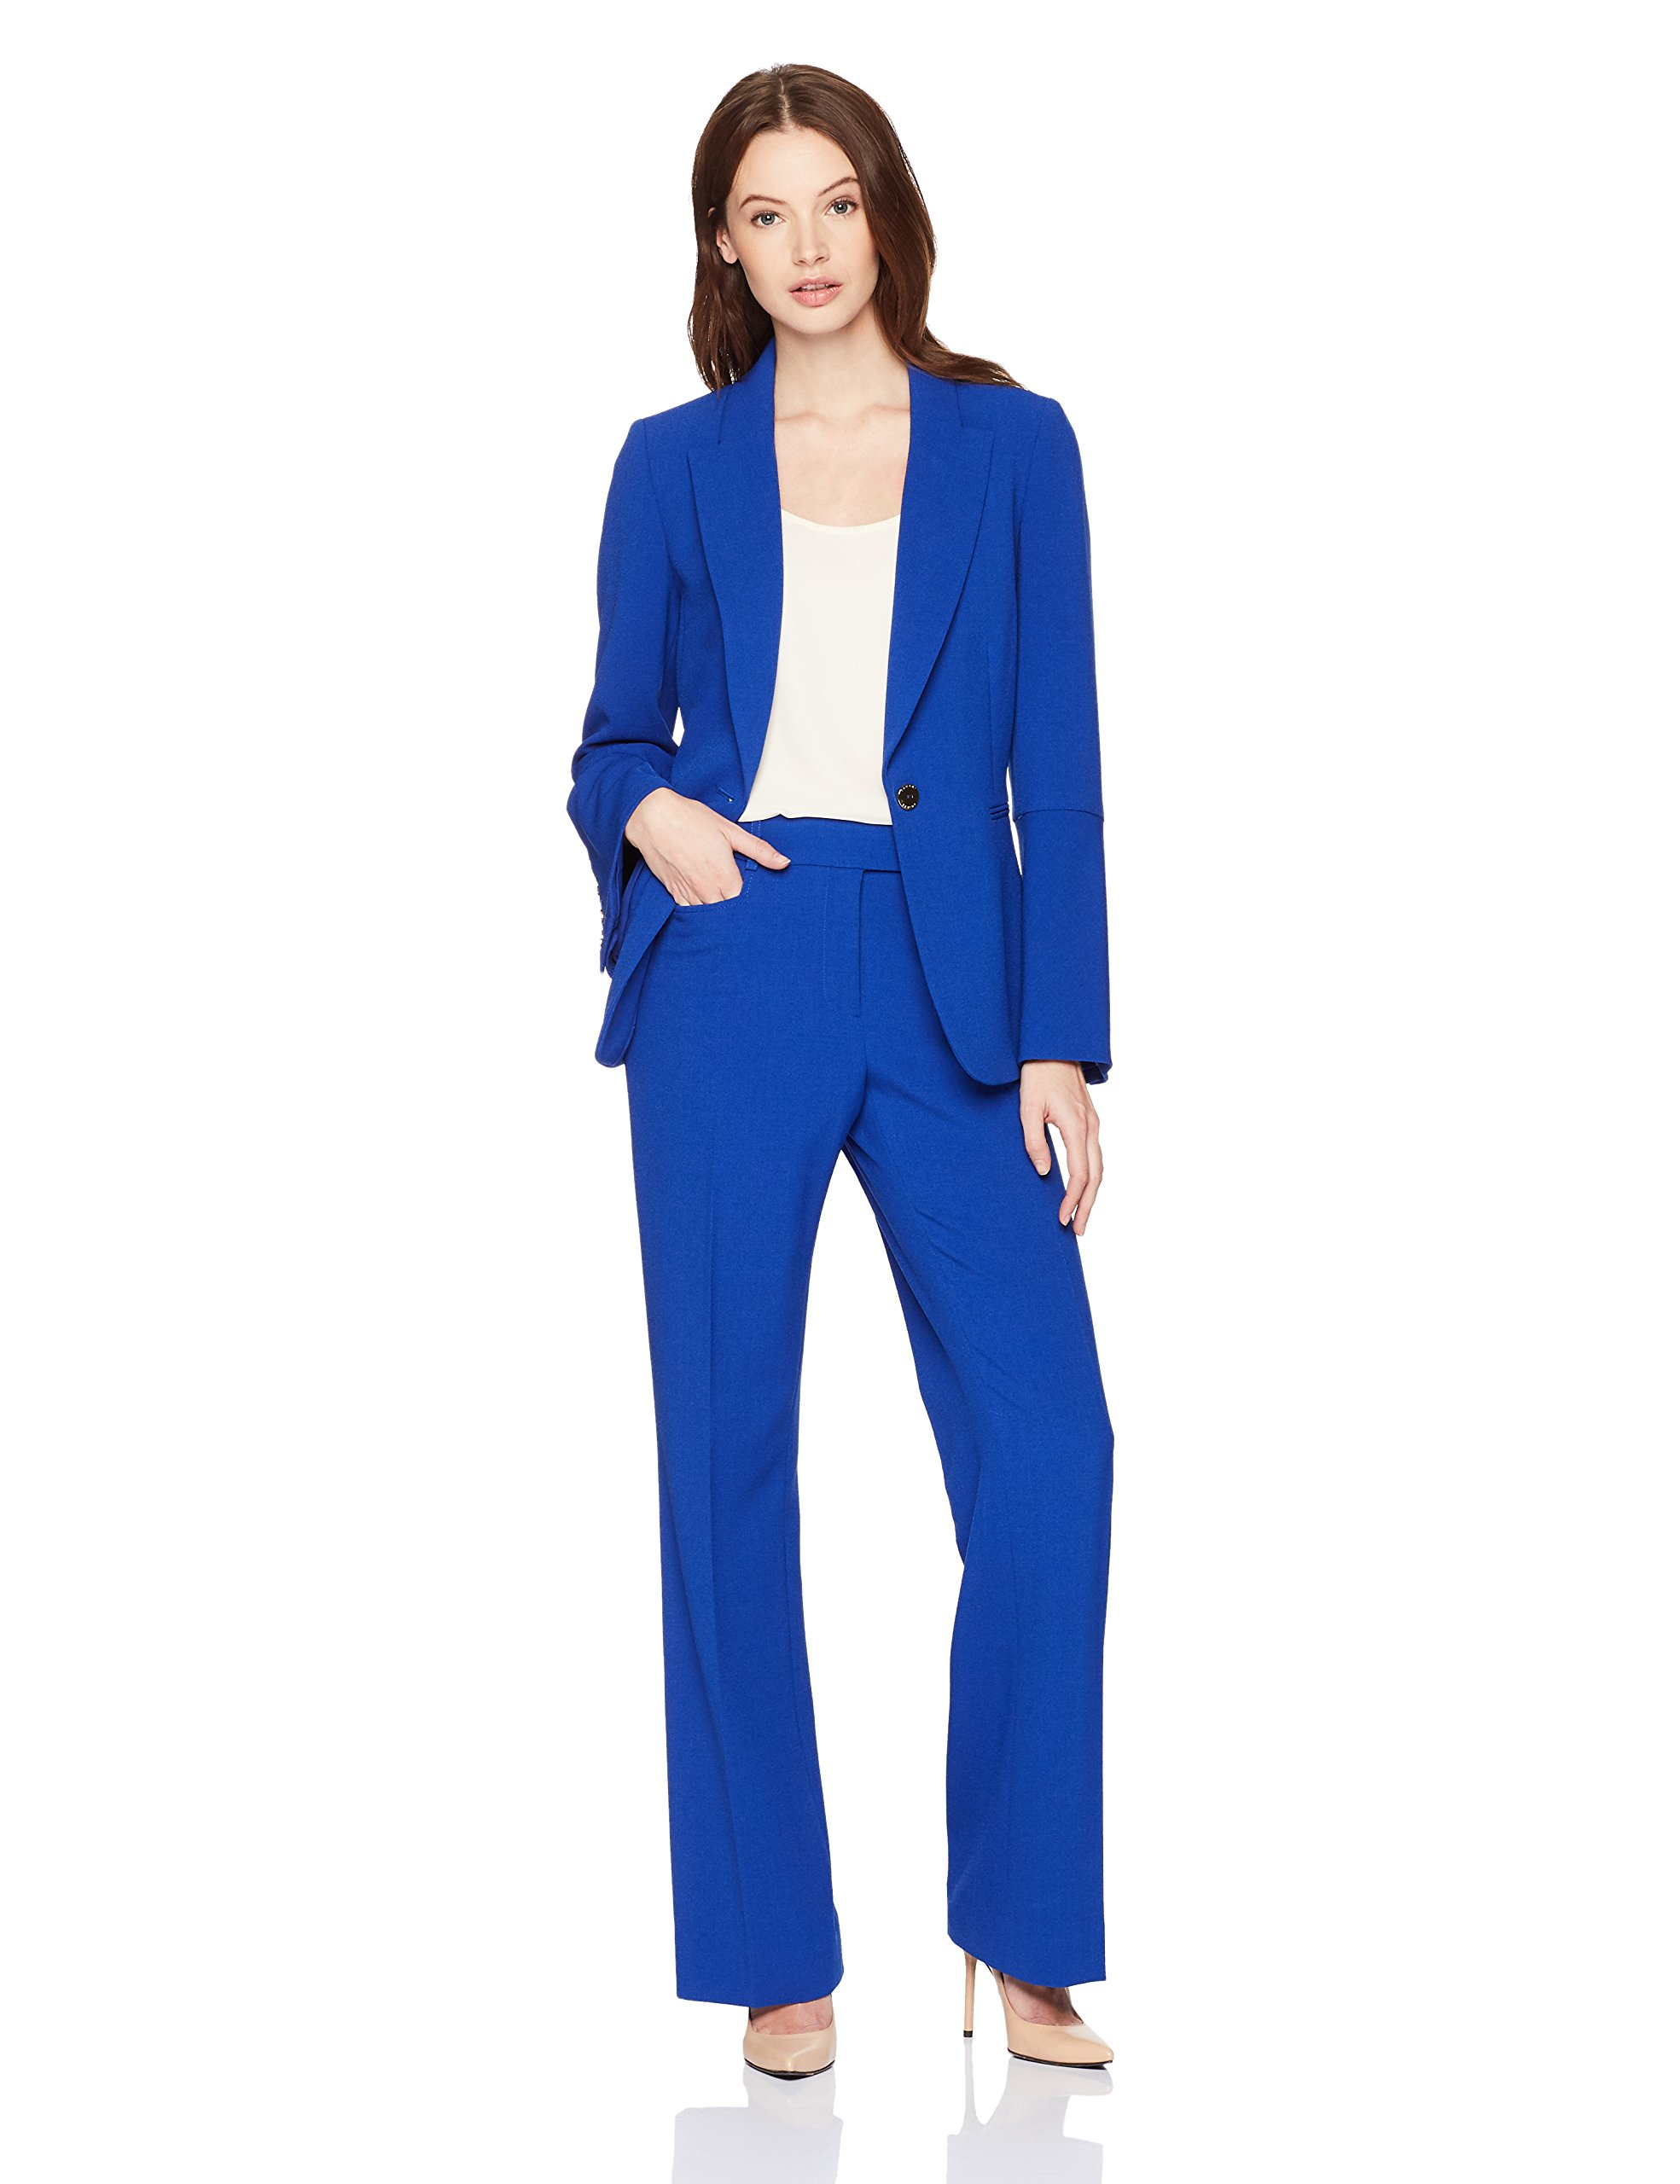 235dc8aa13a08 Get Quotations · Tahari by Arthur S. Levine Women's Pebble Crepe Flare  Sleeve Pant Suit